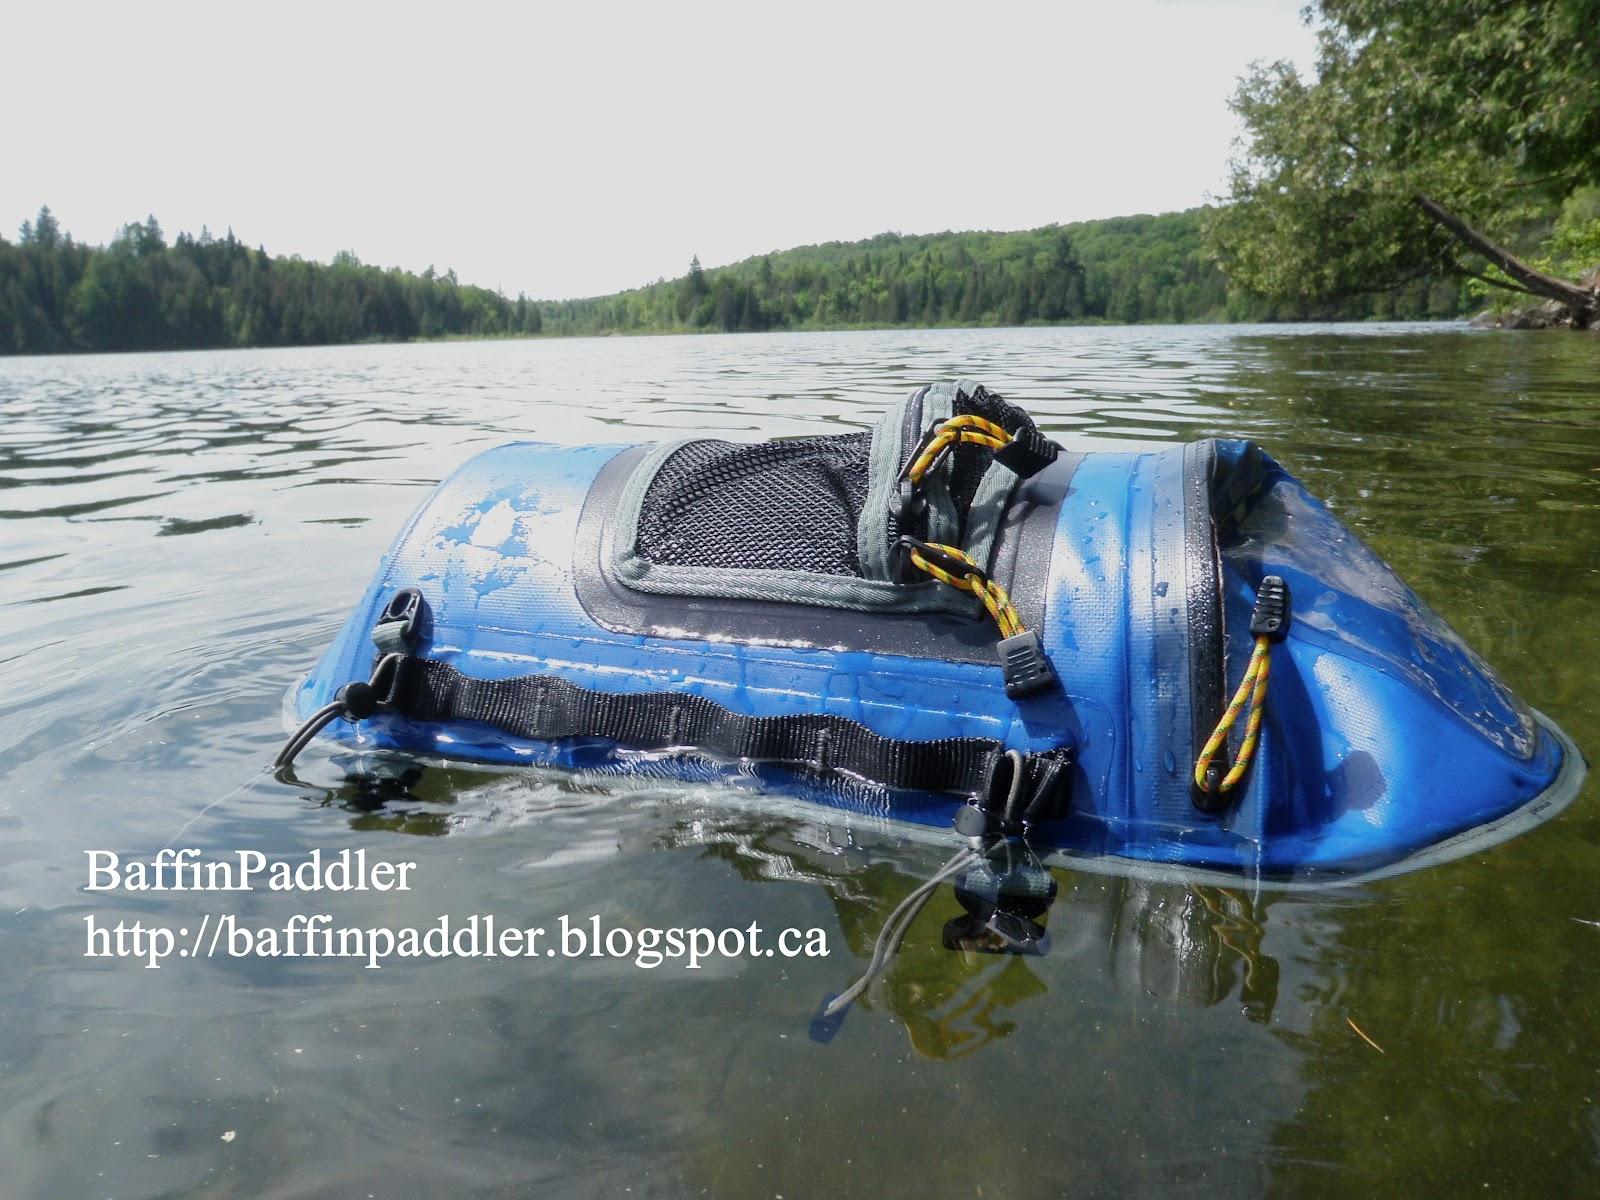 The Wildwasser Kayak Deck Bag Takes Plunge Is It Waterproof Pass Or Fail